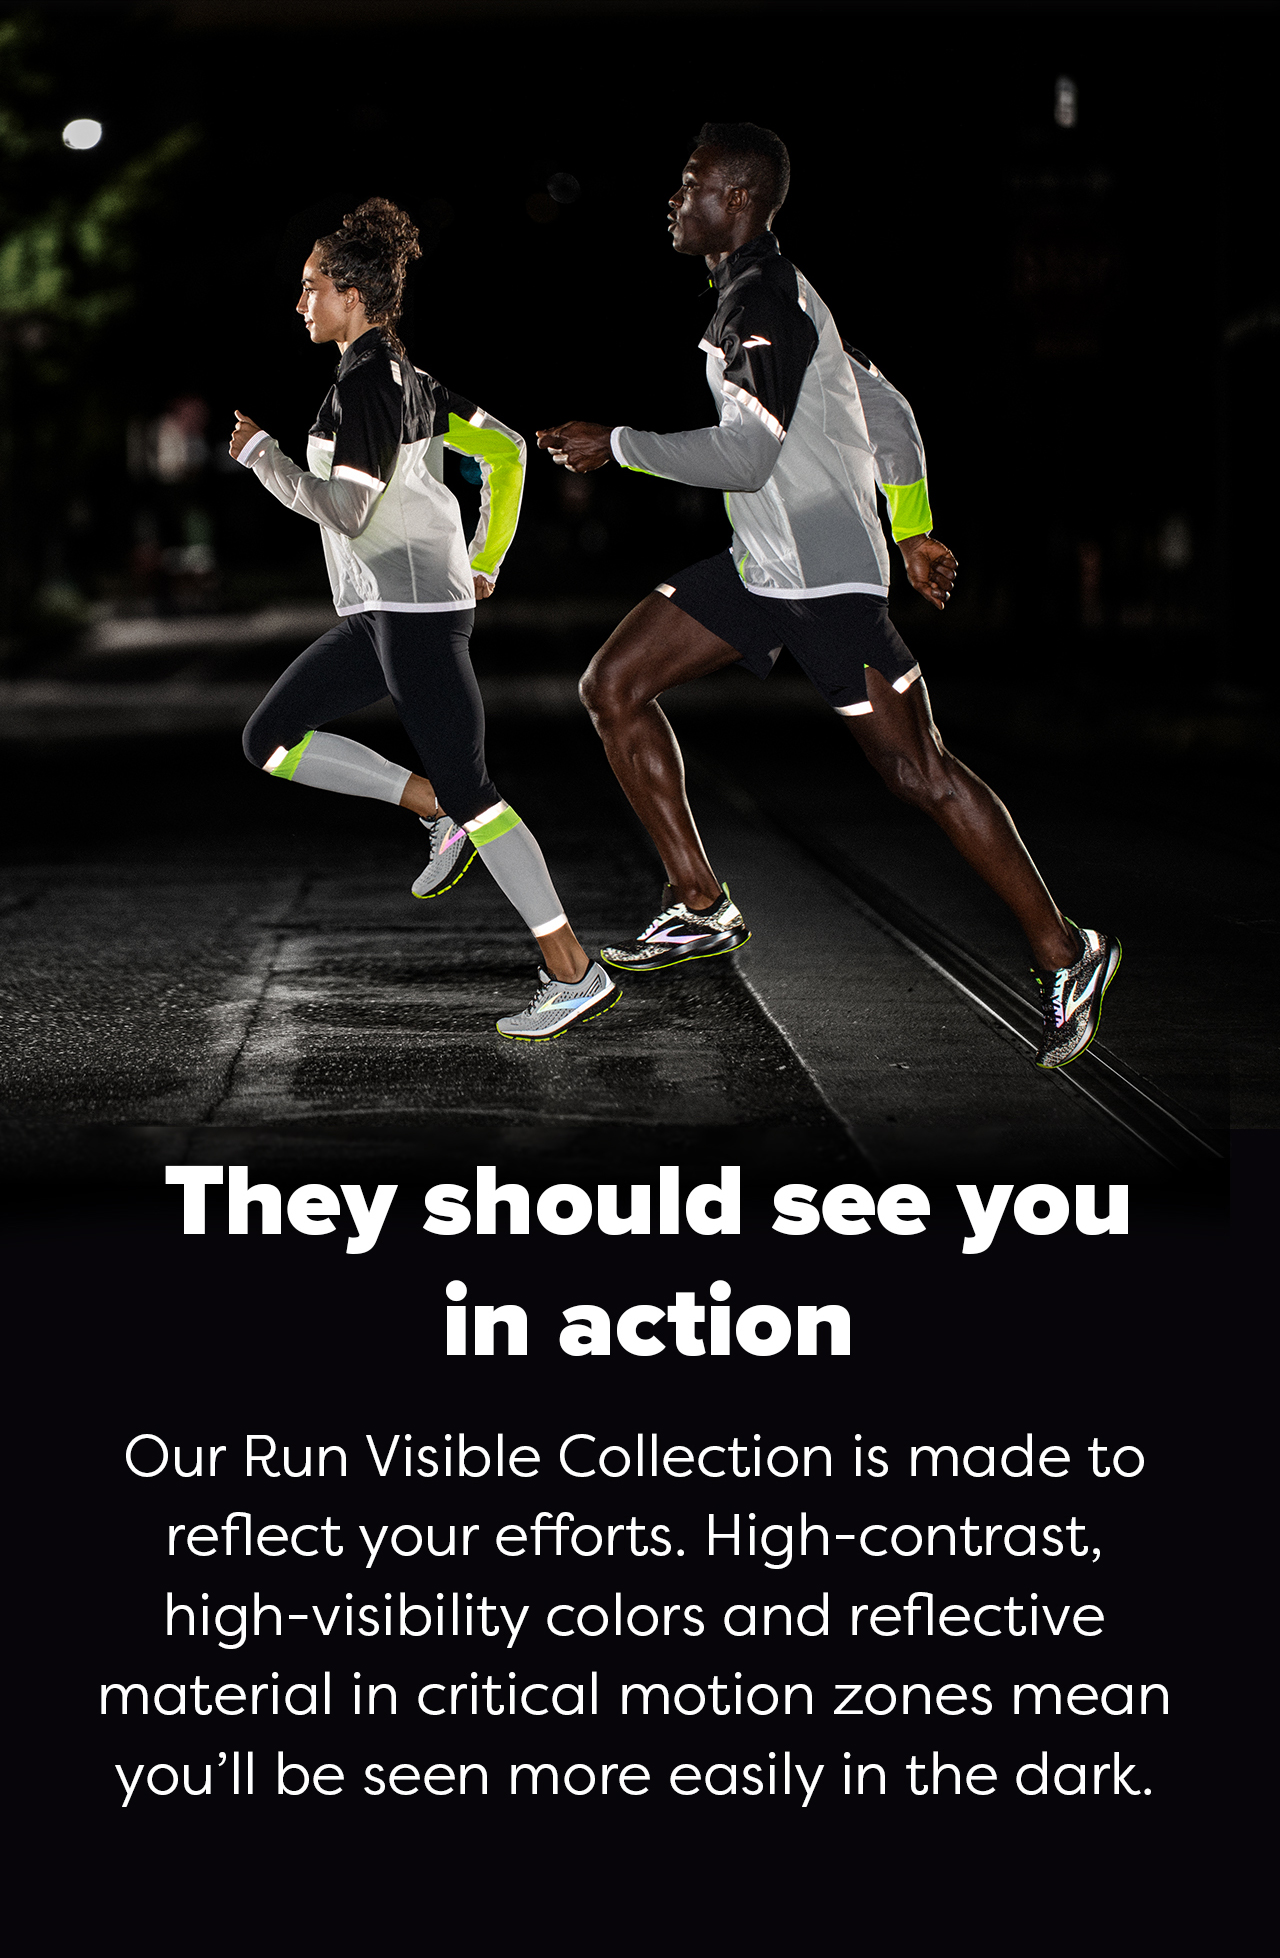 They should see you in action - Our Run Visible Collection is made to reflect your efforts. High-contract, high-visibility colors and reflective material in critical motion zones mean you''ll be seen more easily in the dark.